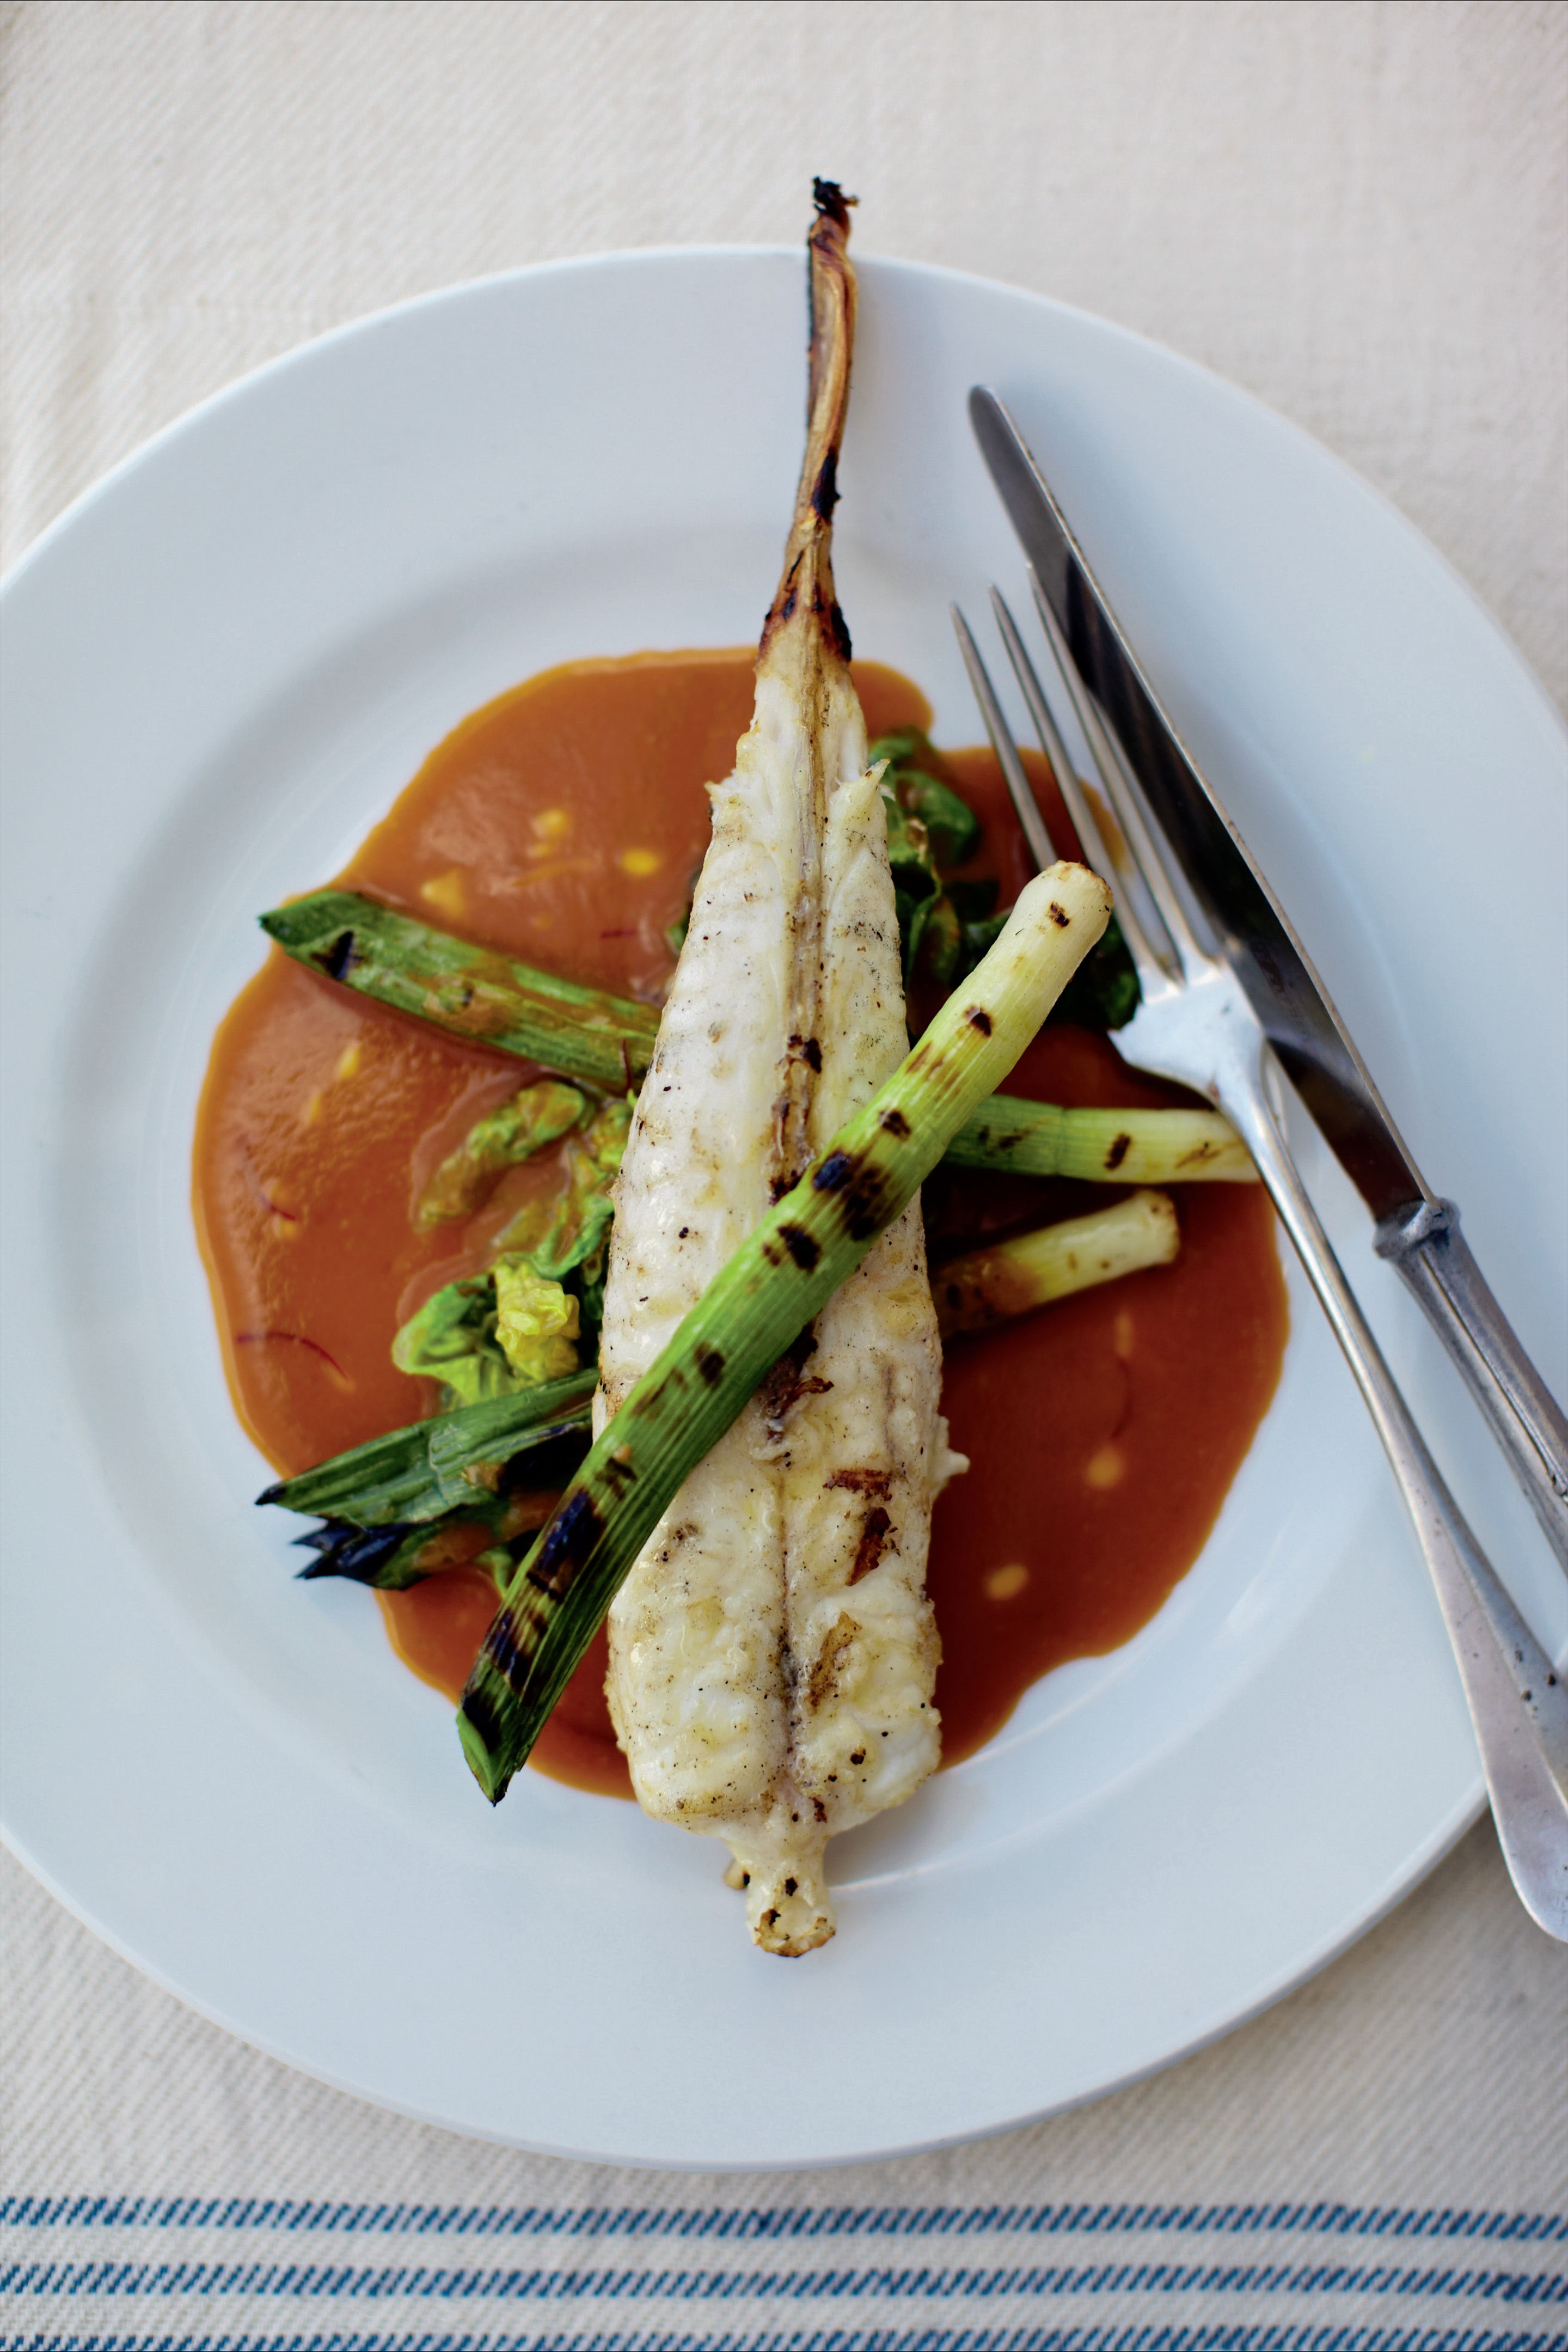 Monkfish with shellfish sauce and grilled leeks